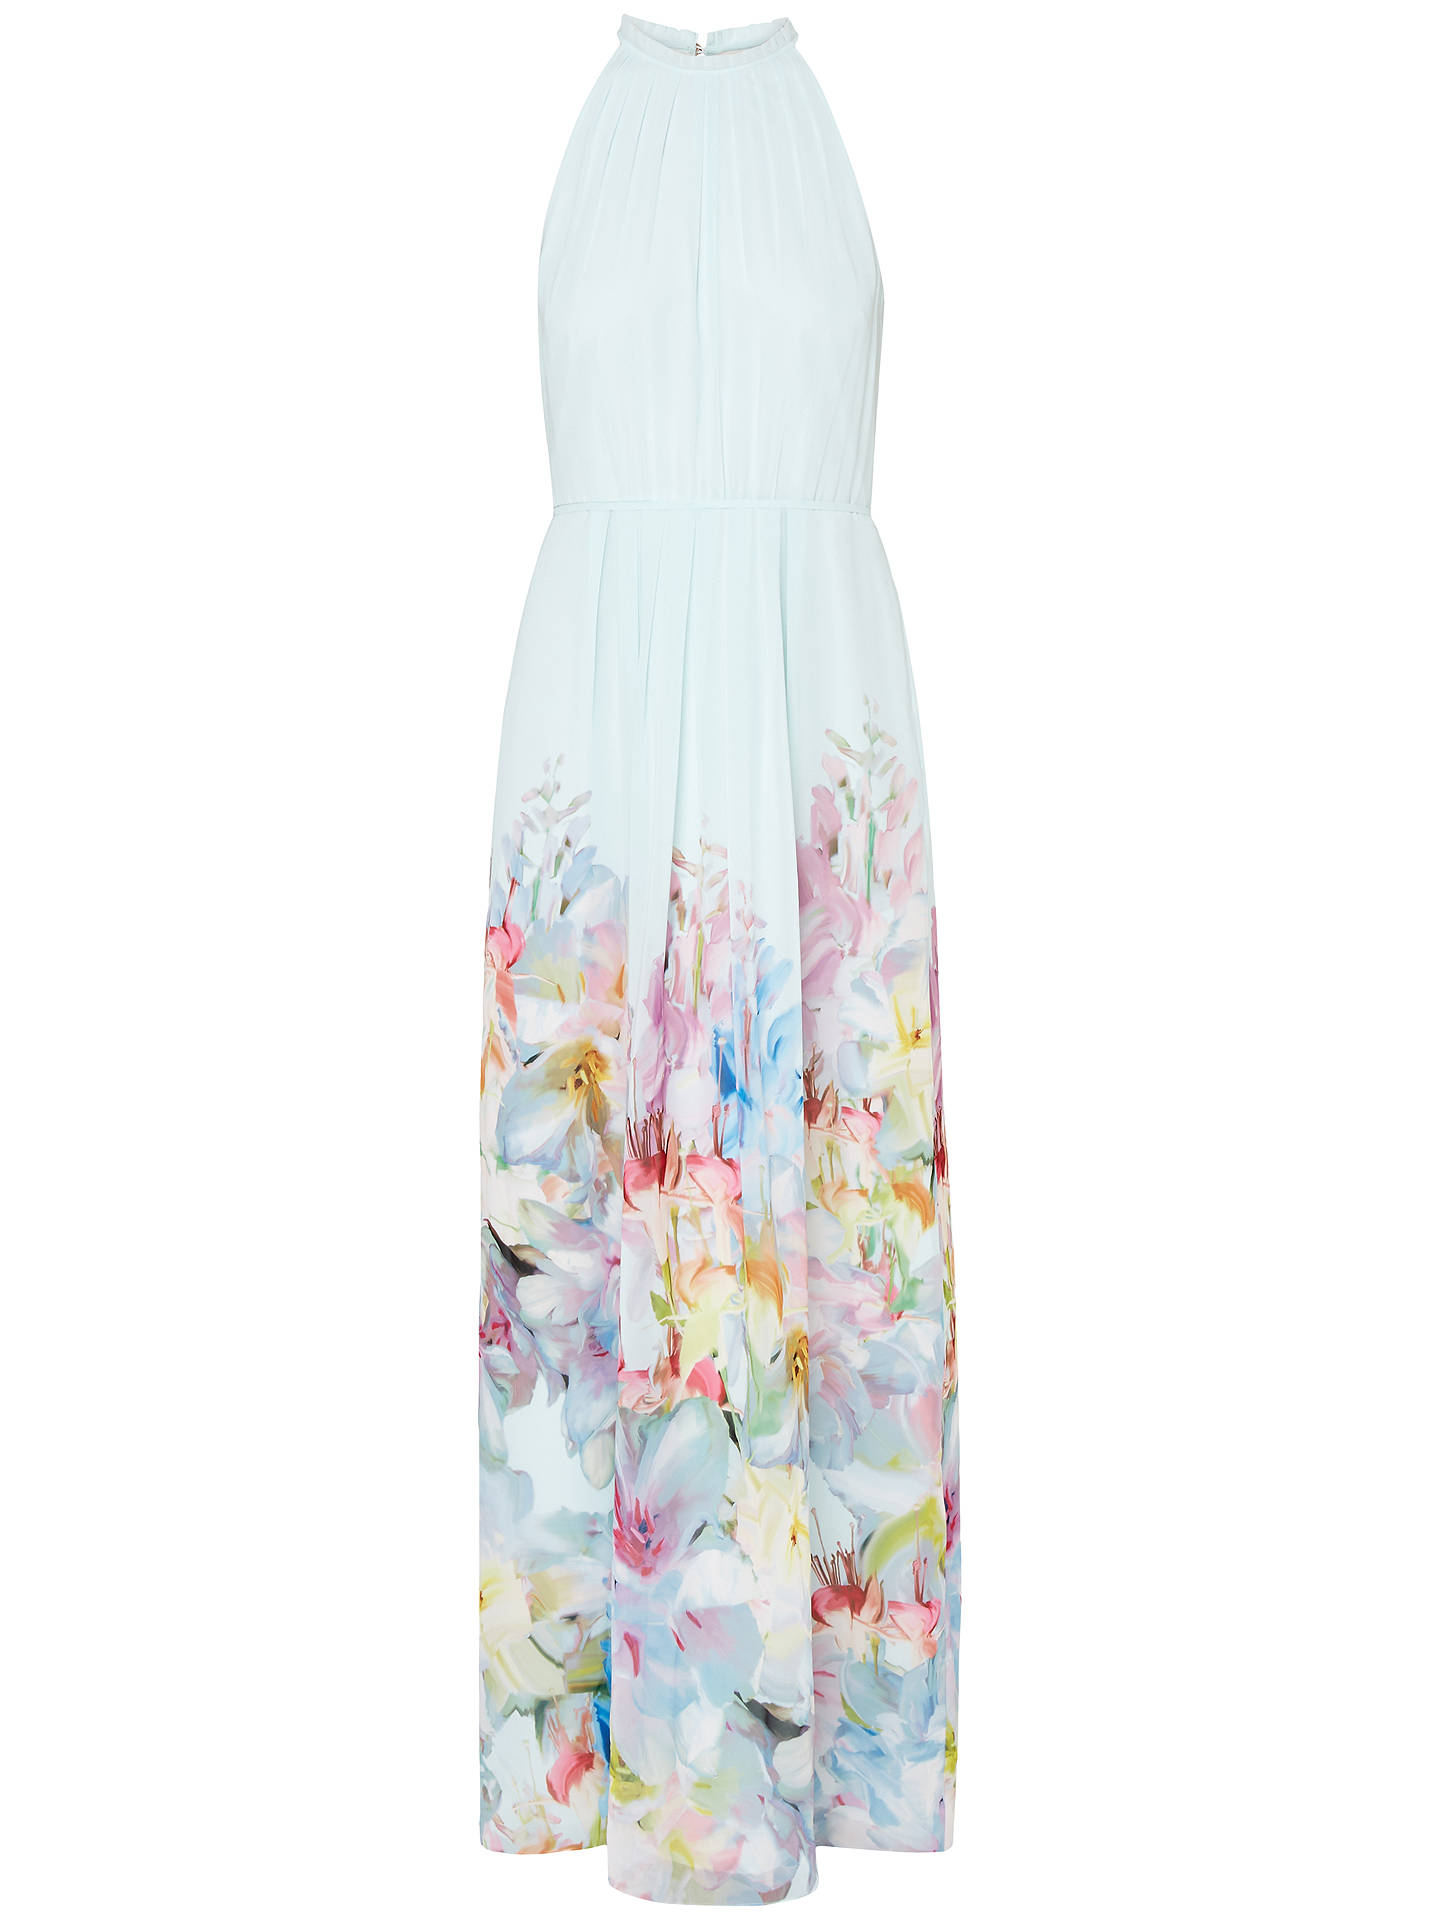 cba715681a649 Buy Ted Baker Hanging Gardens Maxi Dress